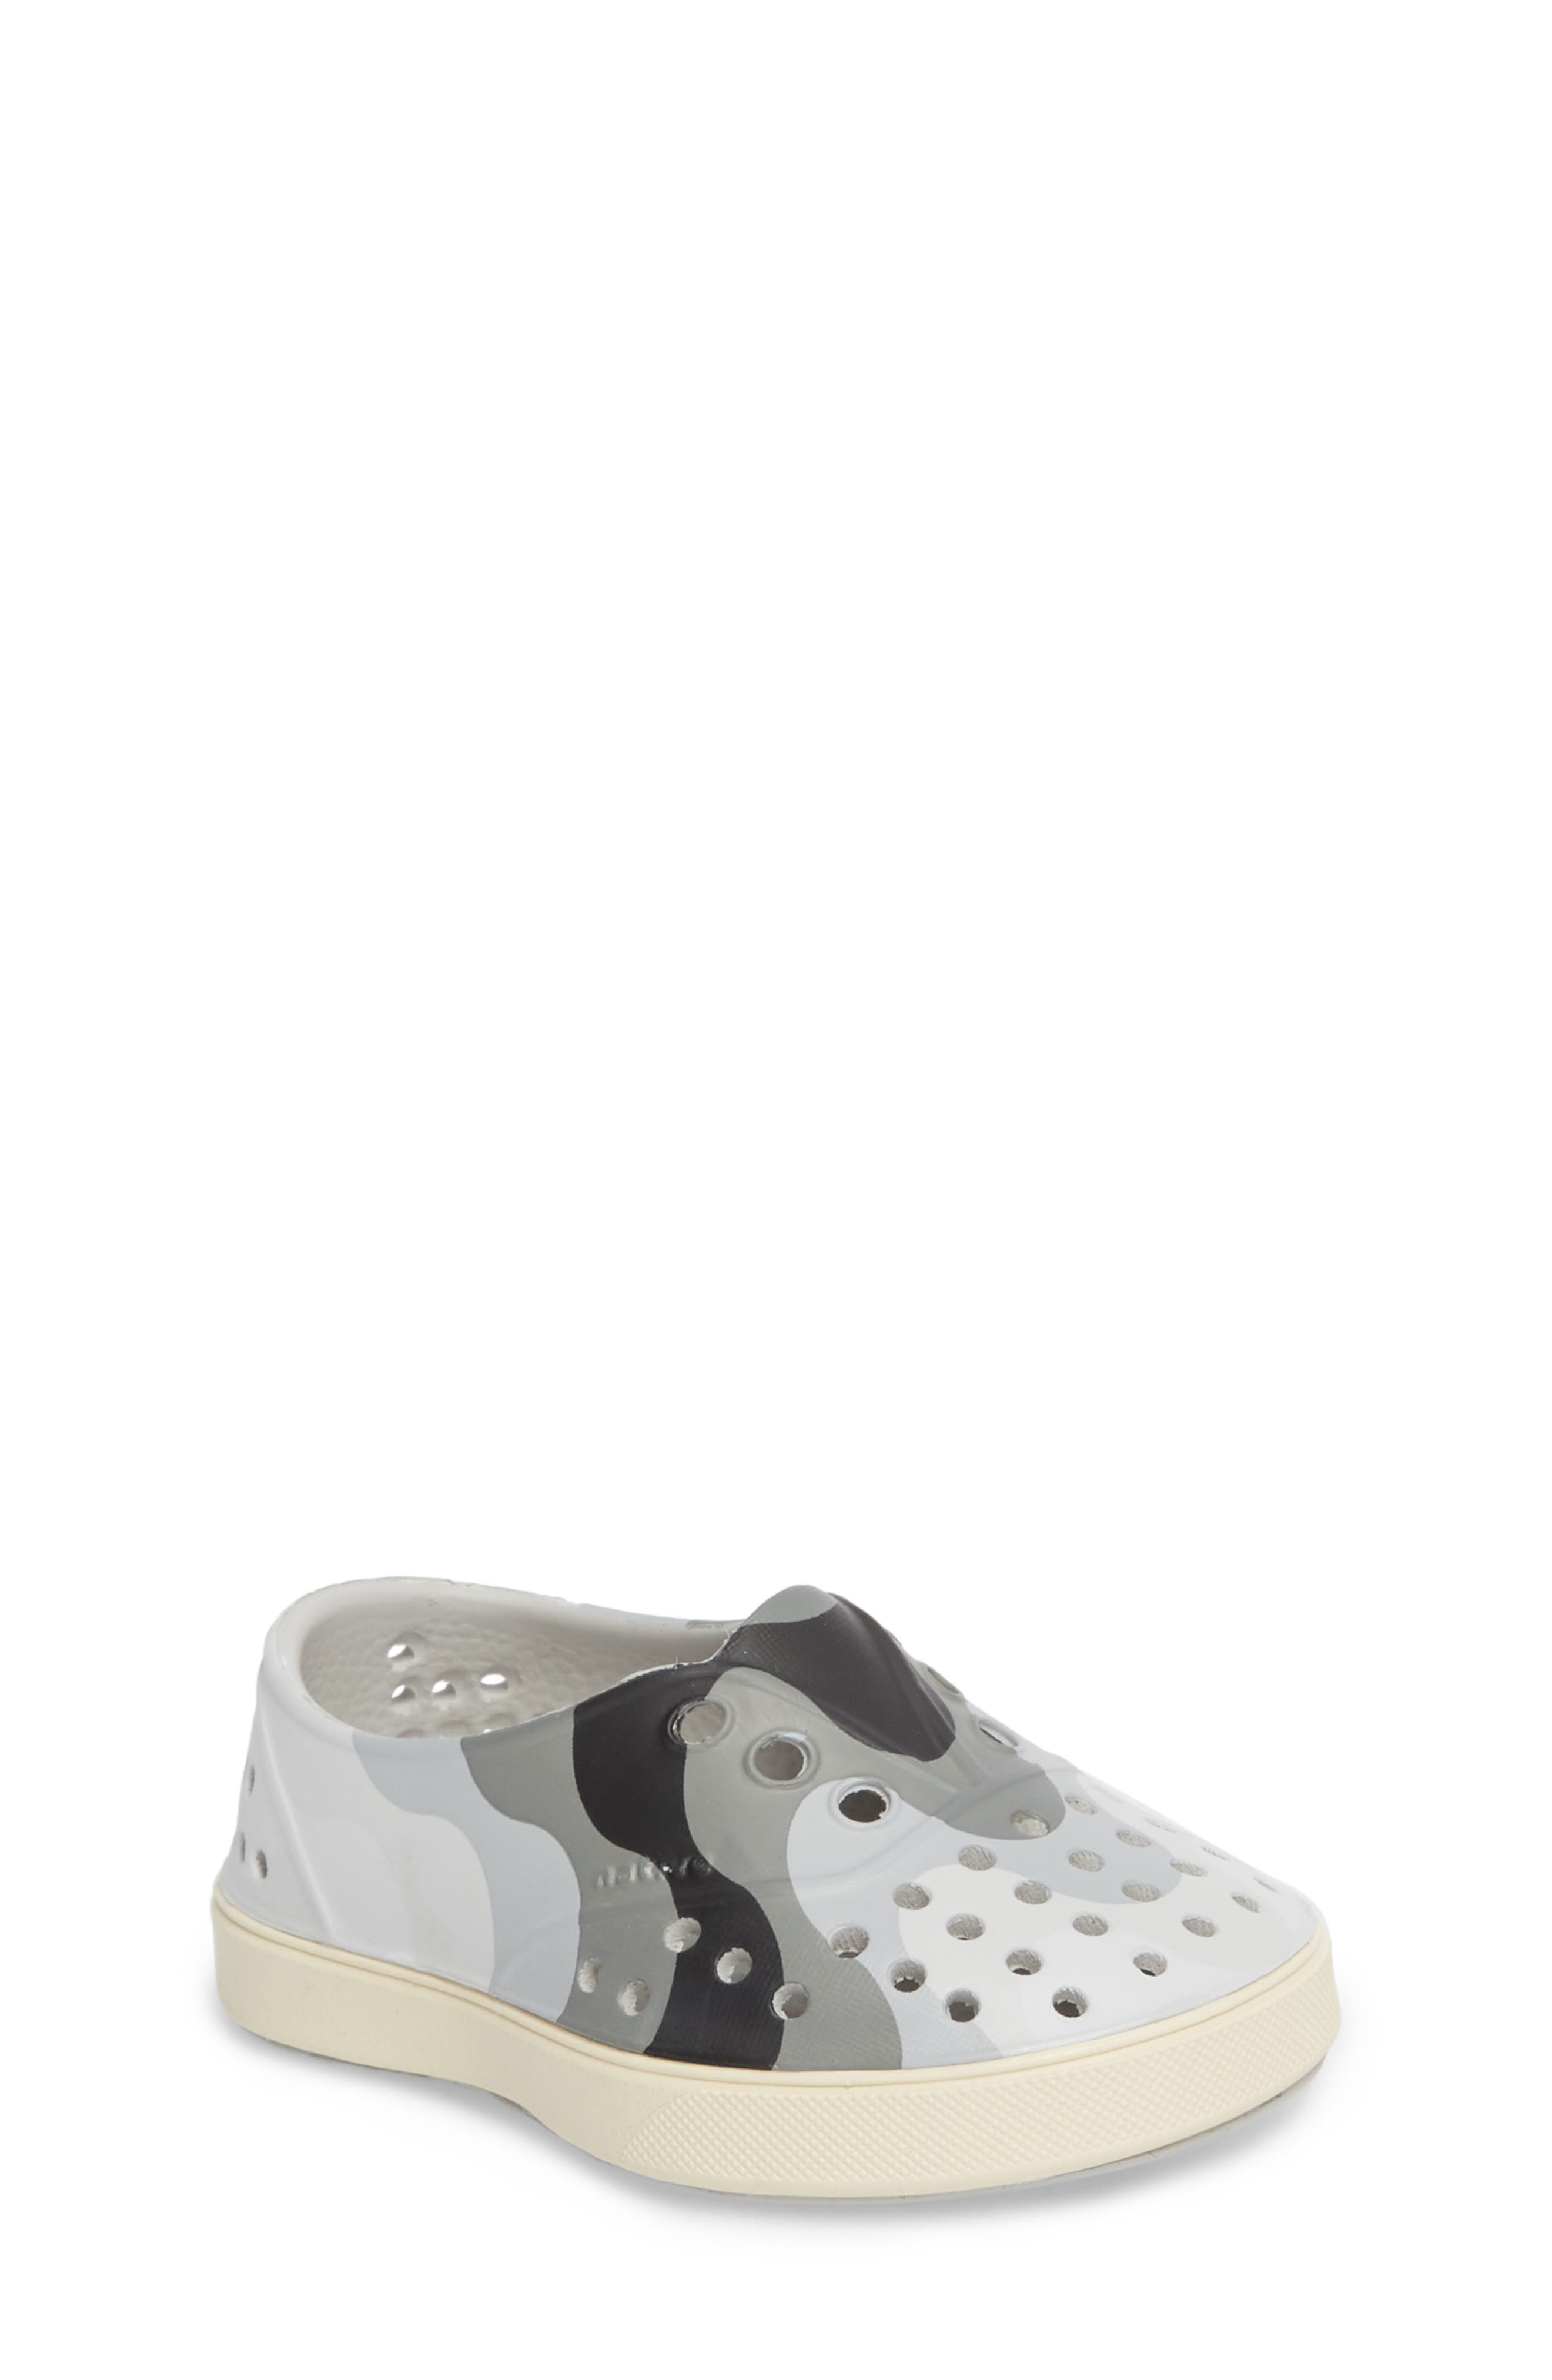 NATIVE SHOES,                             'Miller' Water Friendly Perforated Sneaker,                             Main thumbnail 1, color,                             022